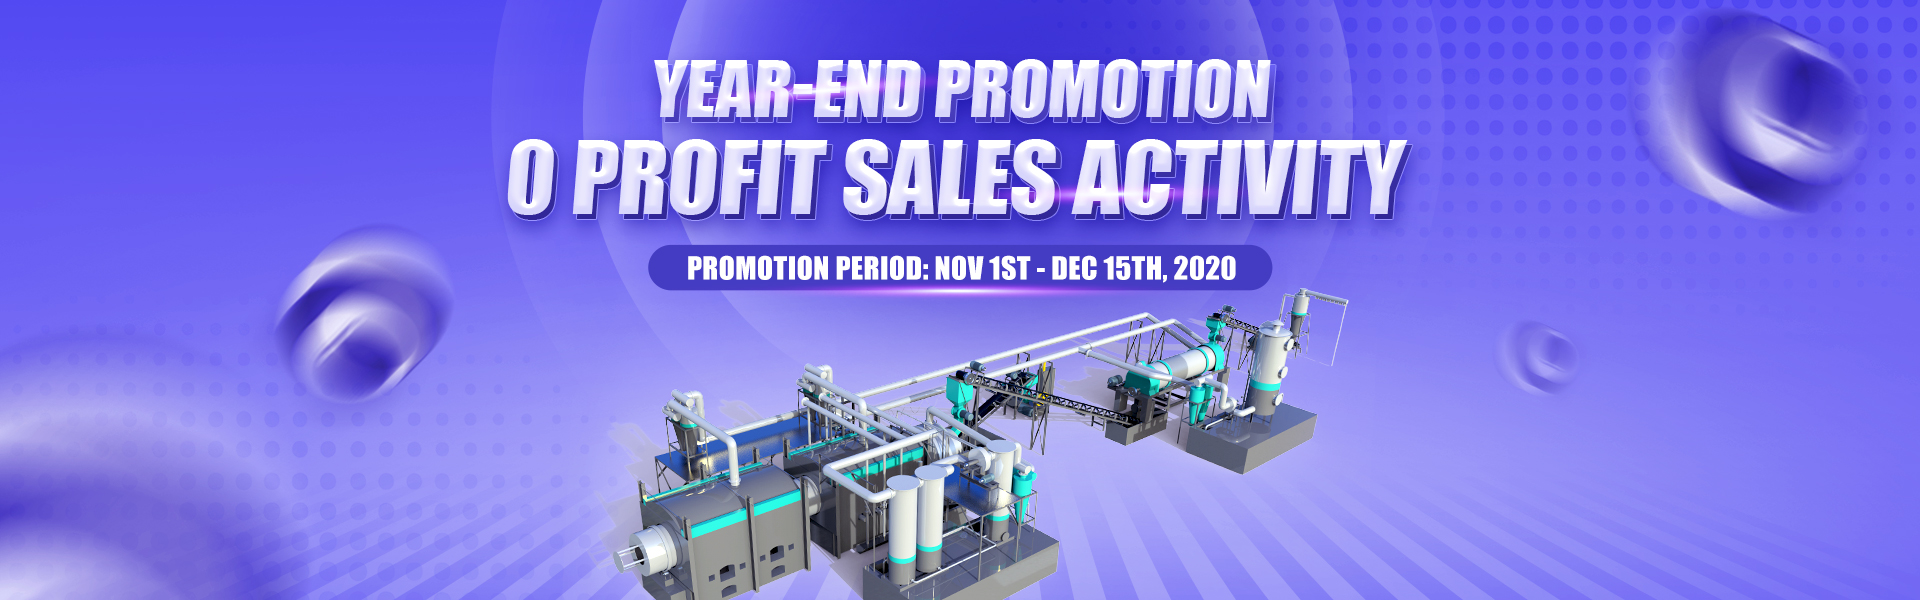 charcoal machine year-end activity banner